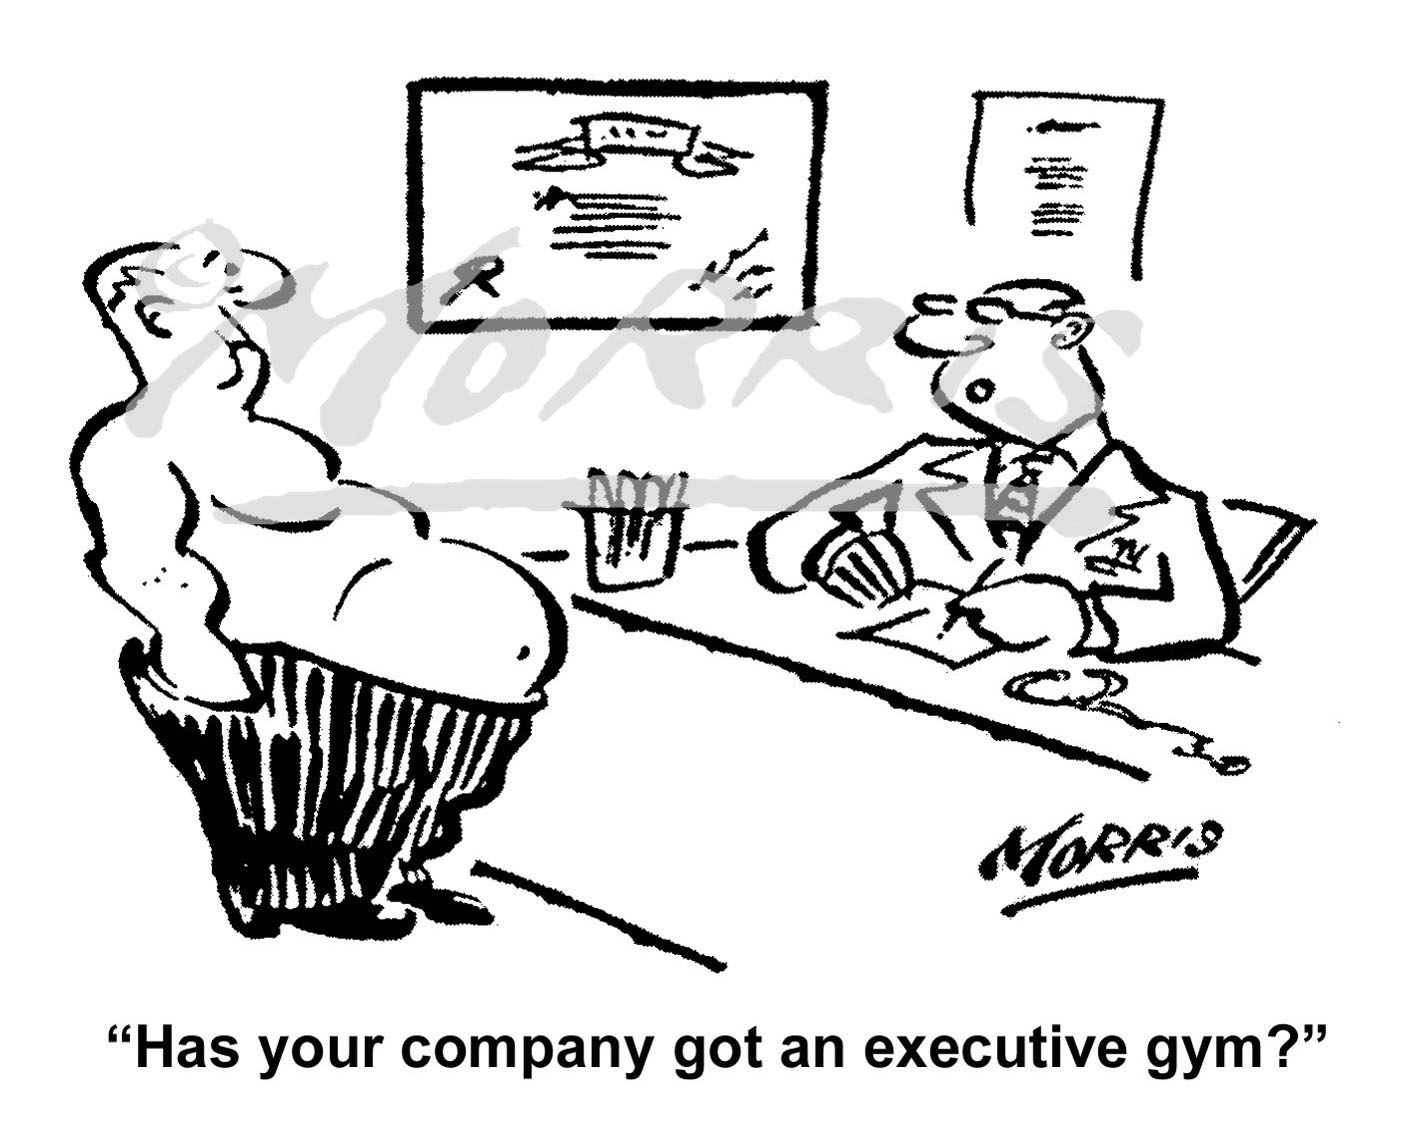 Healthcare cartoon, gym cartoon – Ref: 7426bw